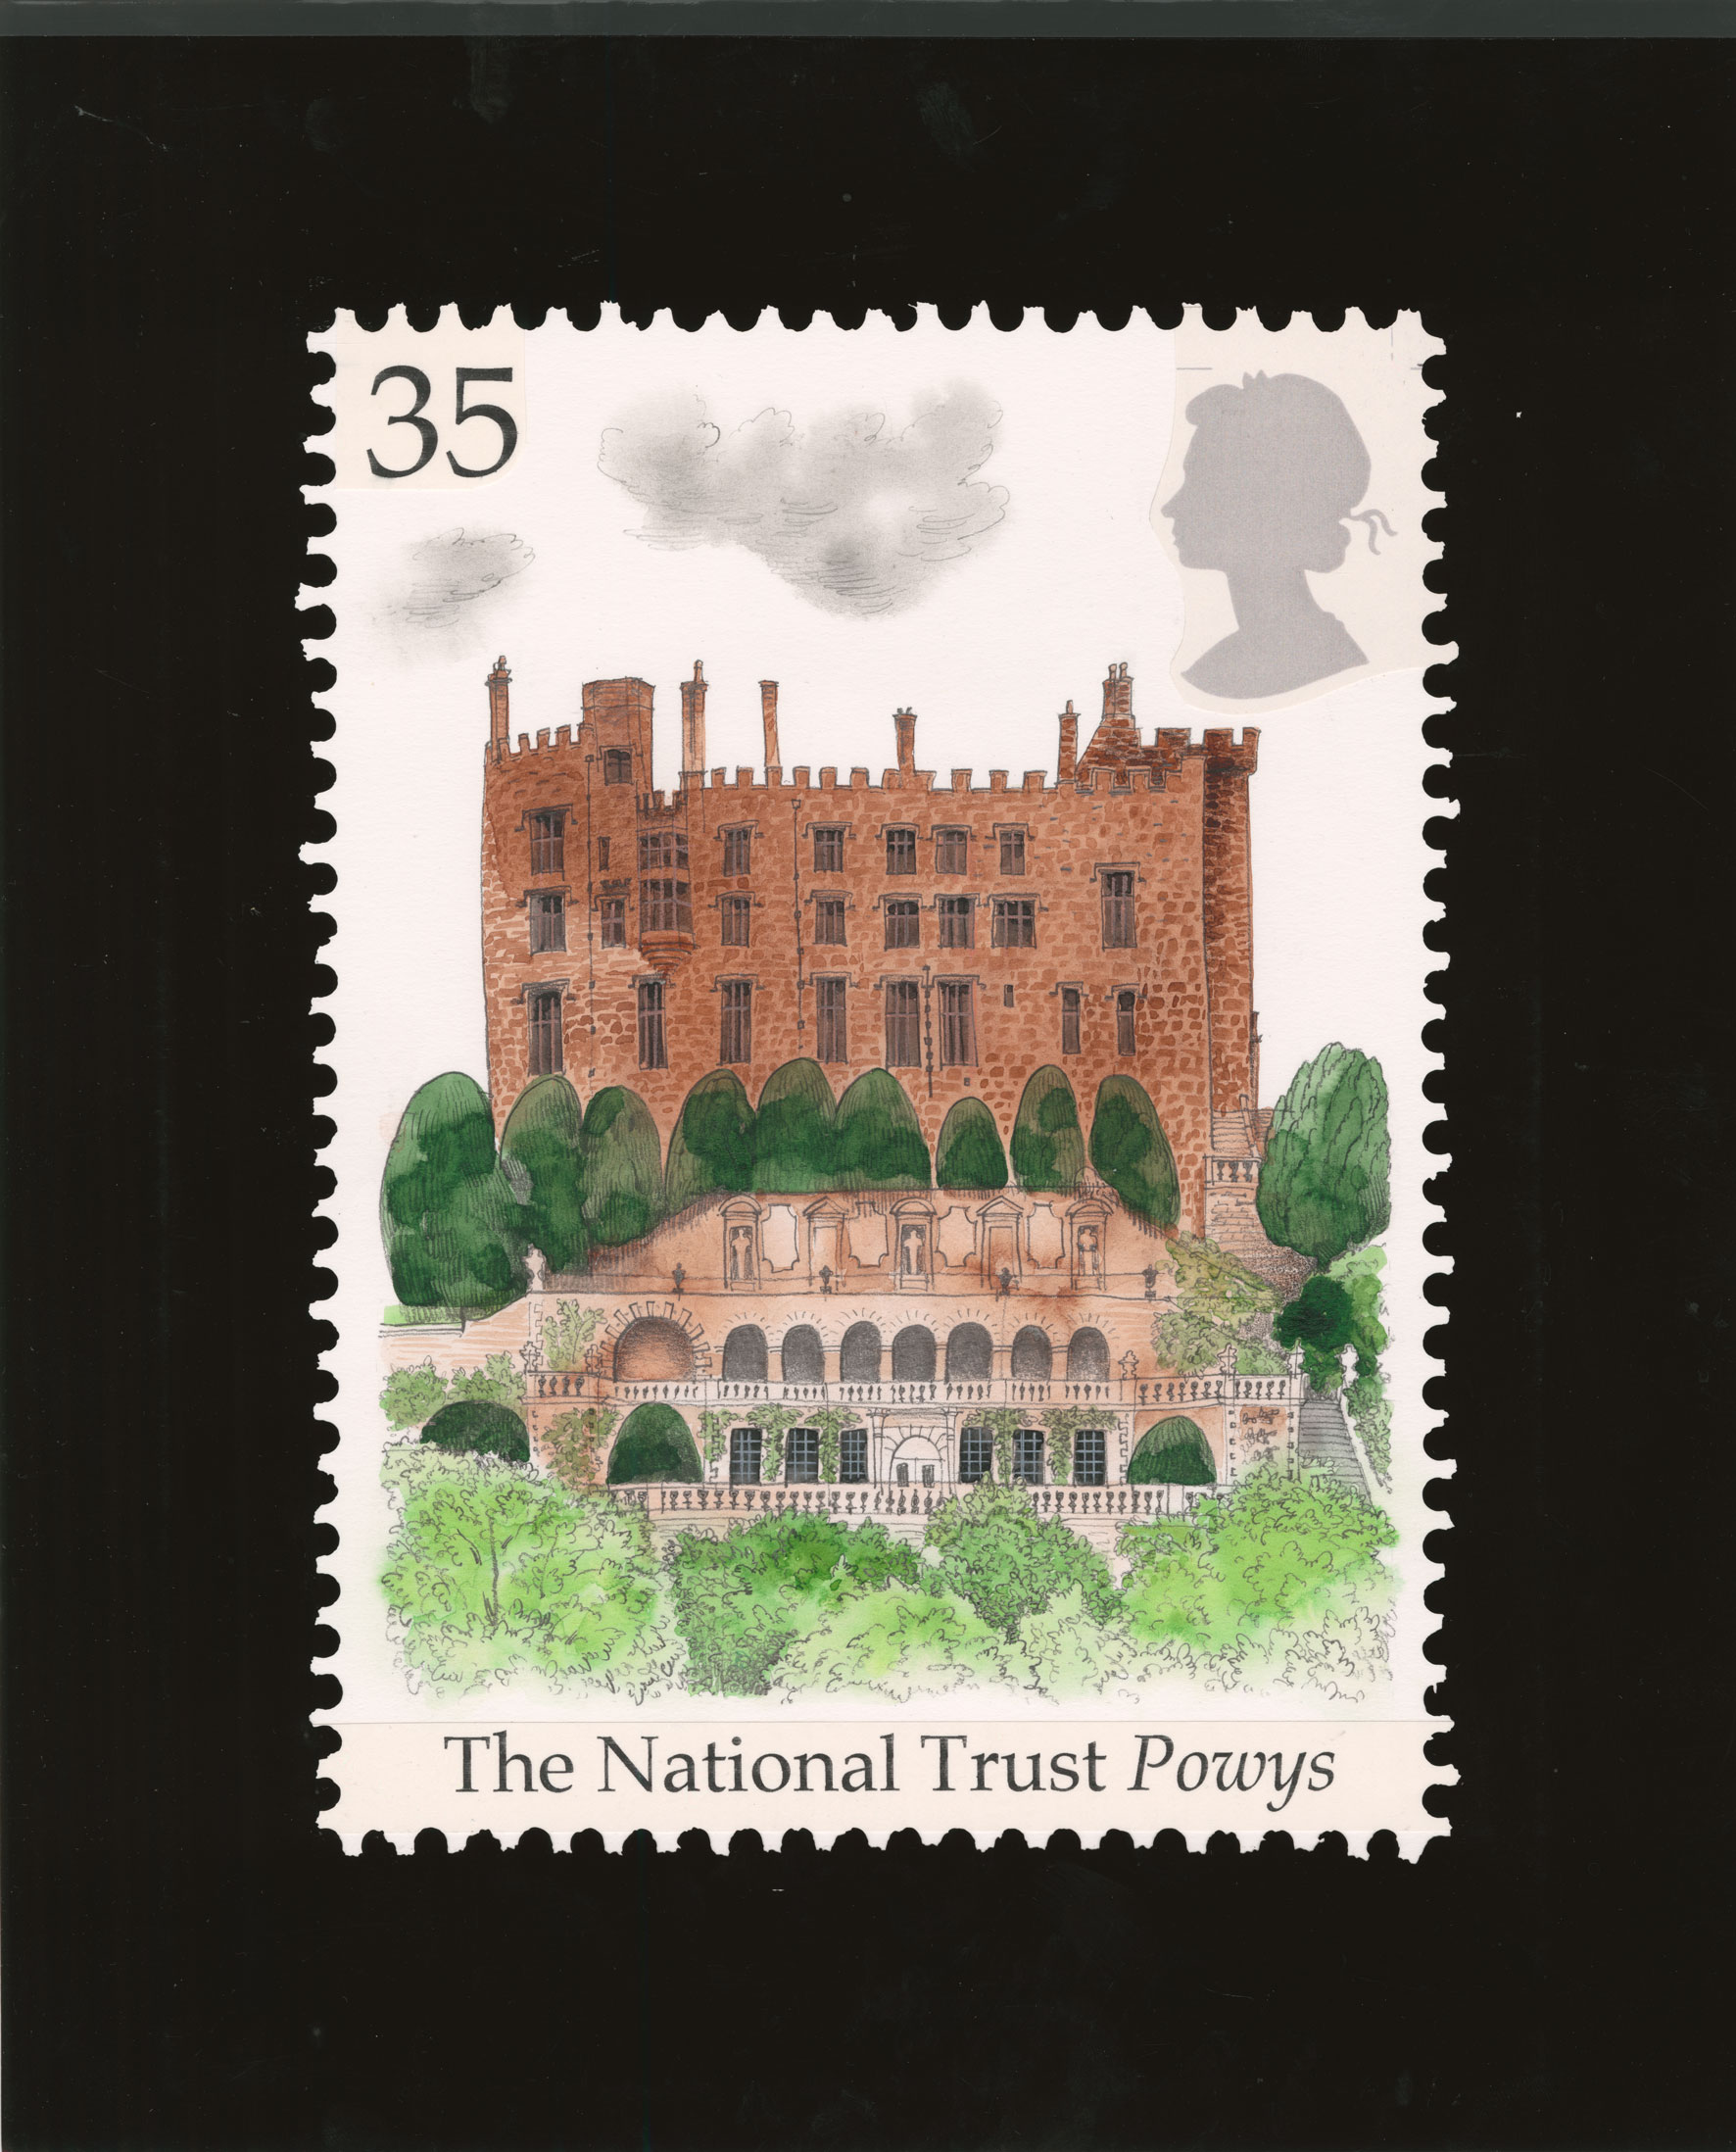 Stamp depicting a castle surrounded by trees and bushes.